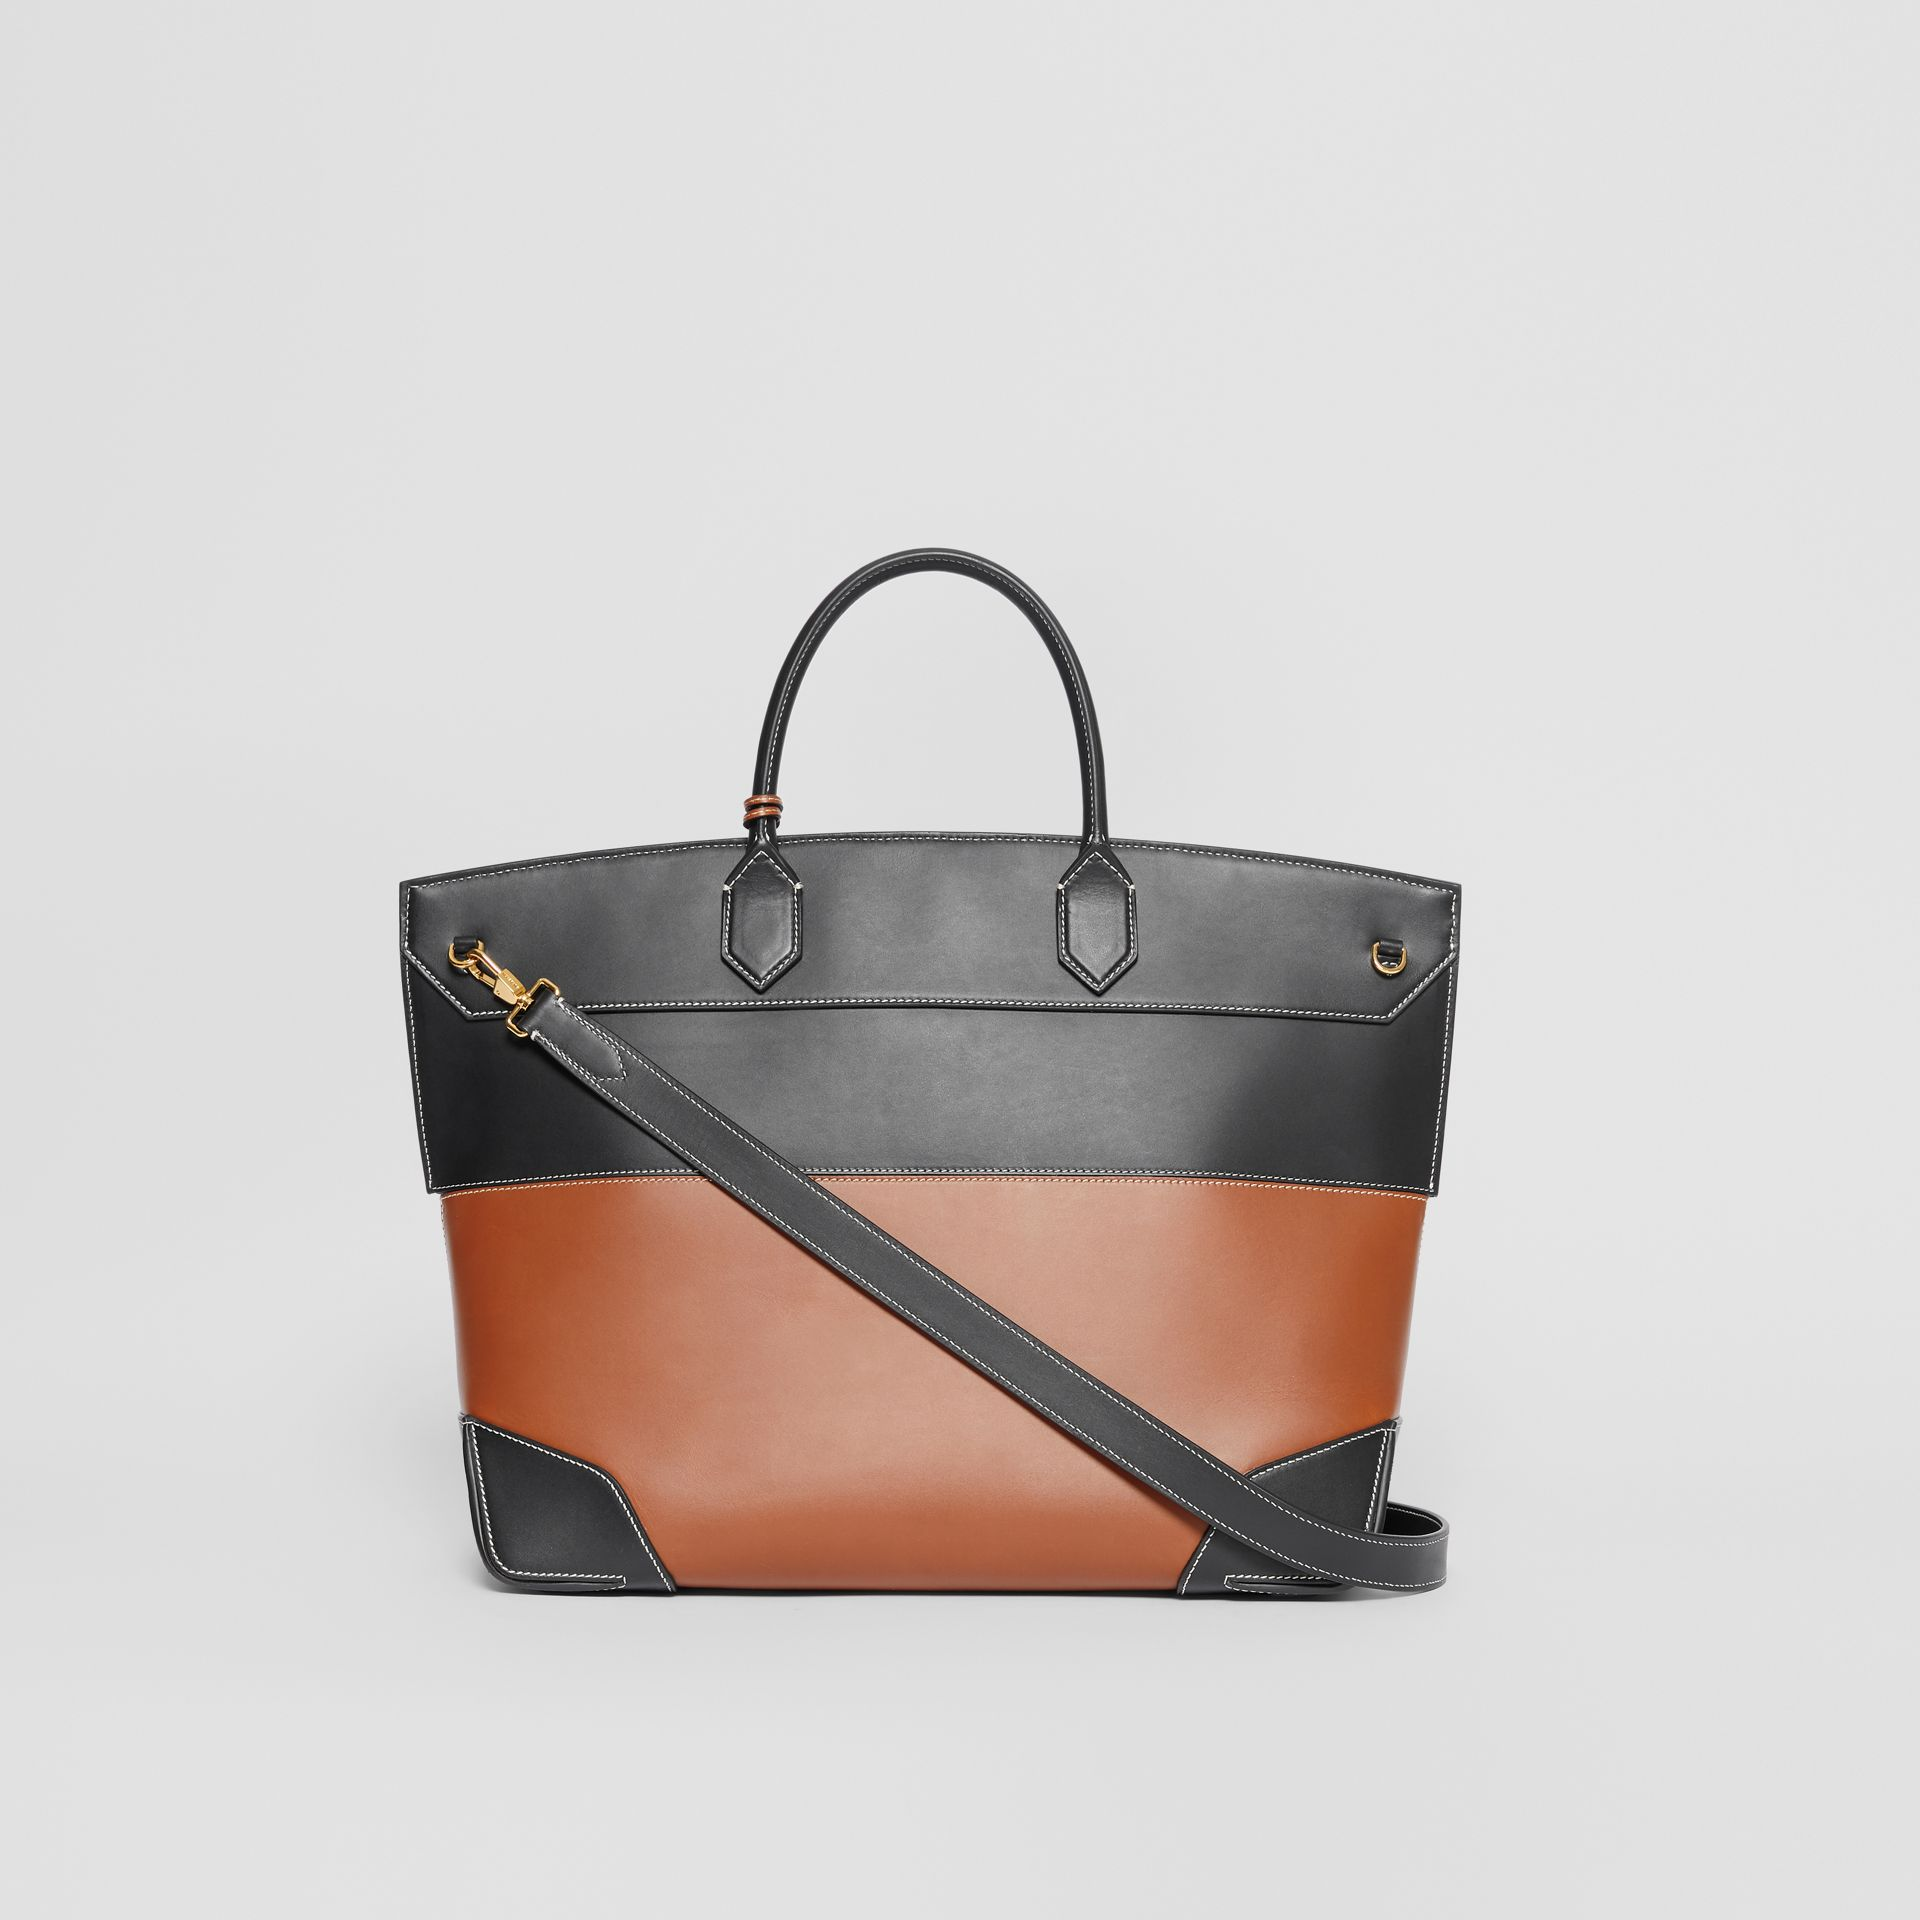 Tri-tone Leather and Canvas Society Top Handle Bag in Tan/black - Women | Burberry United States - gallery image 5